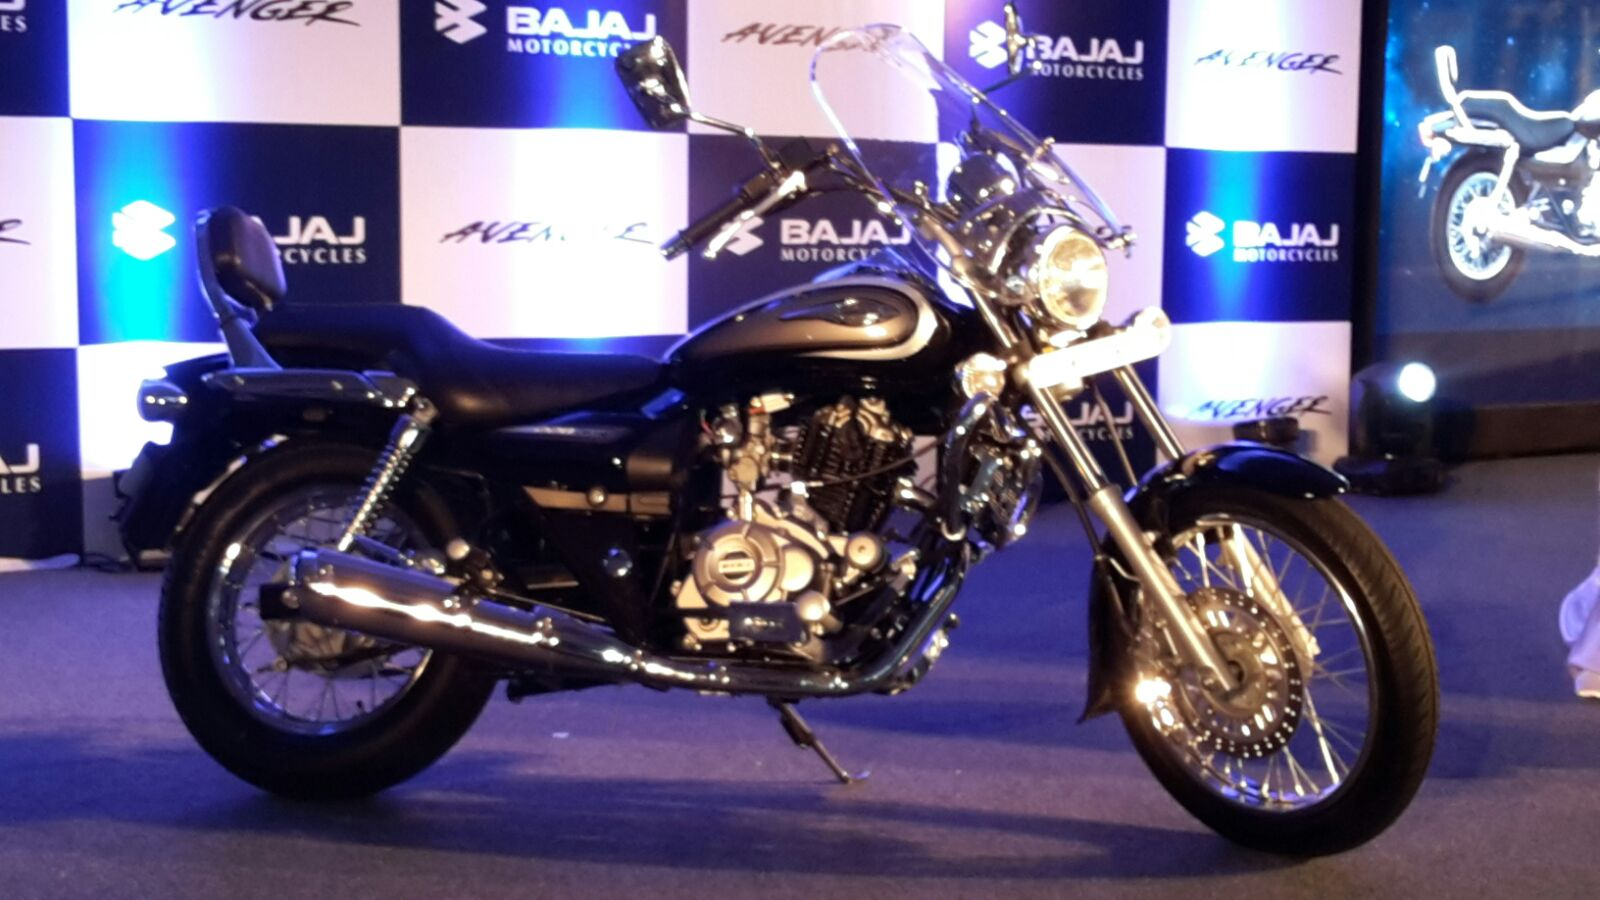 Bajaj Avenger 375cc Price In India Launch Date Specifications Mileage